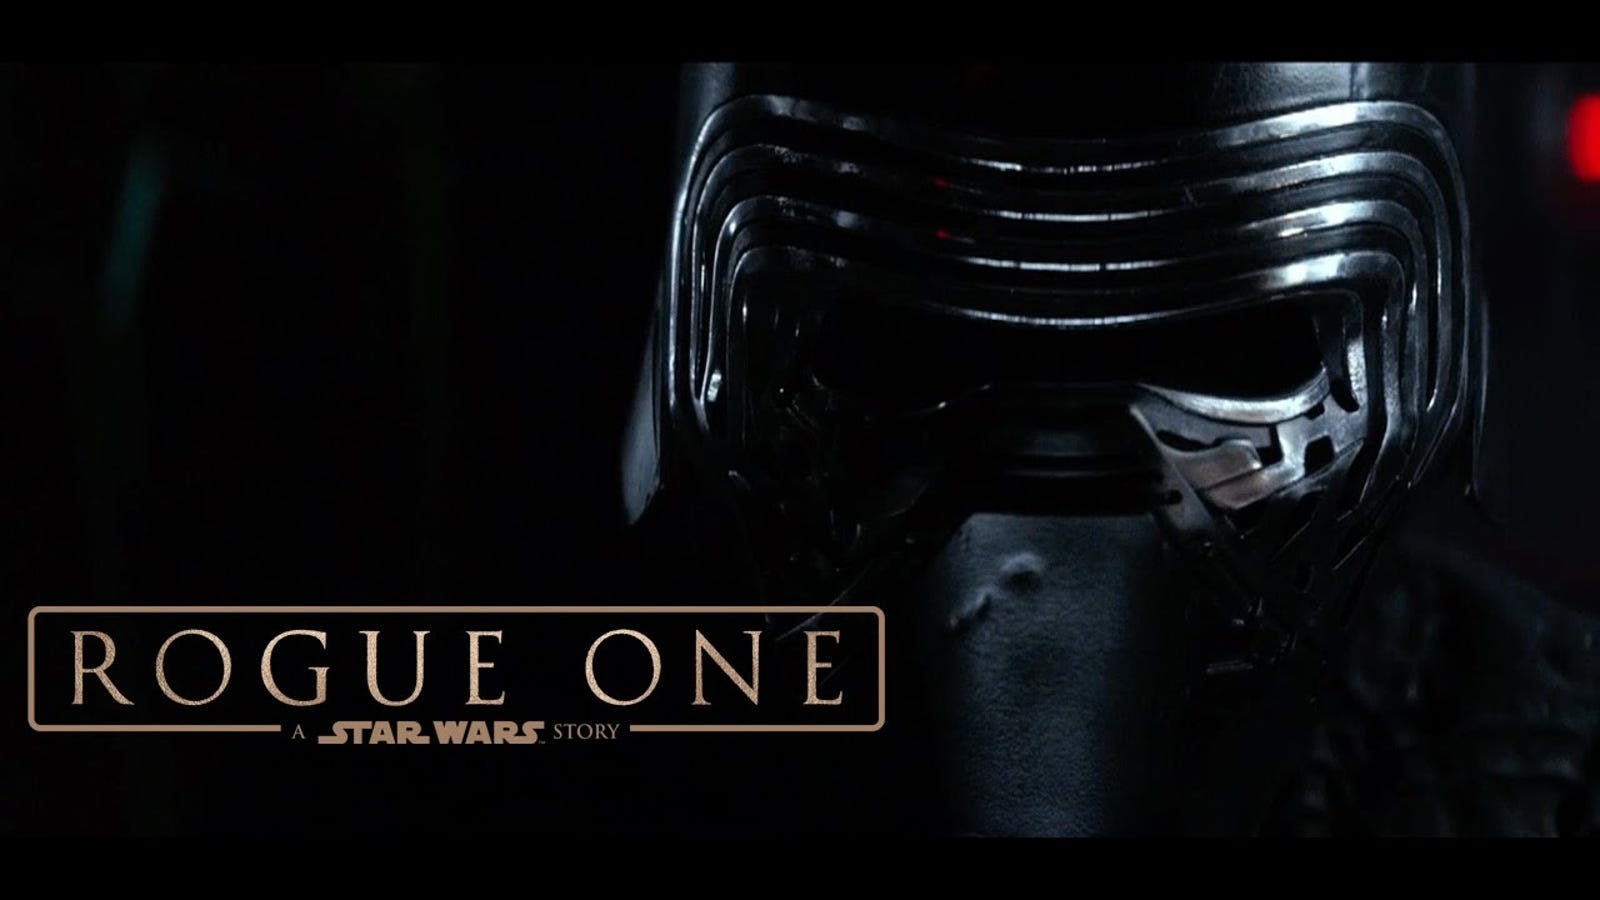 Kylo Ren Loses It While Watching the Rogue One Trailer